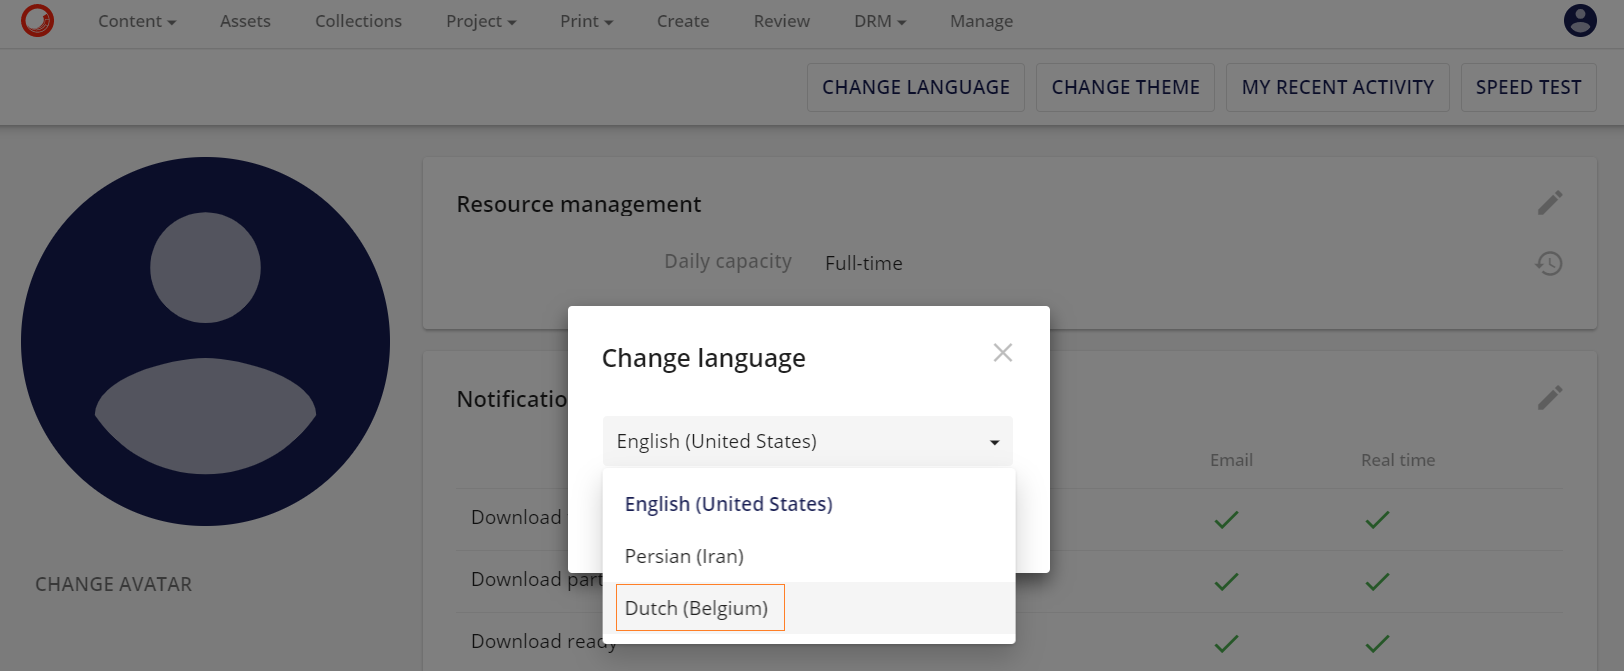 change language in the profile settings